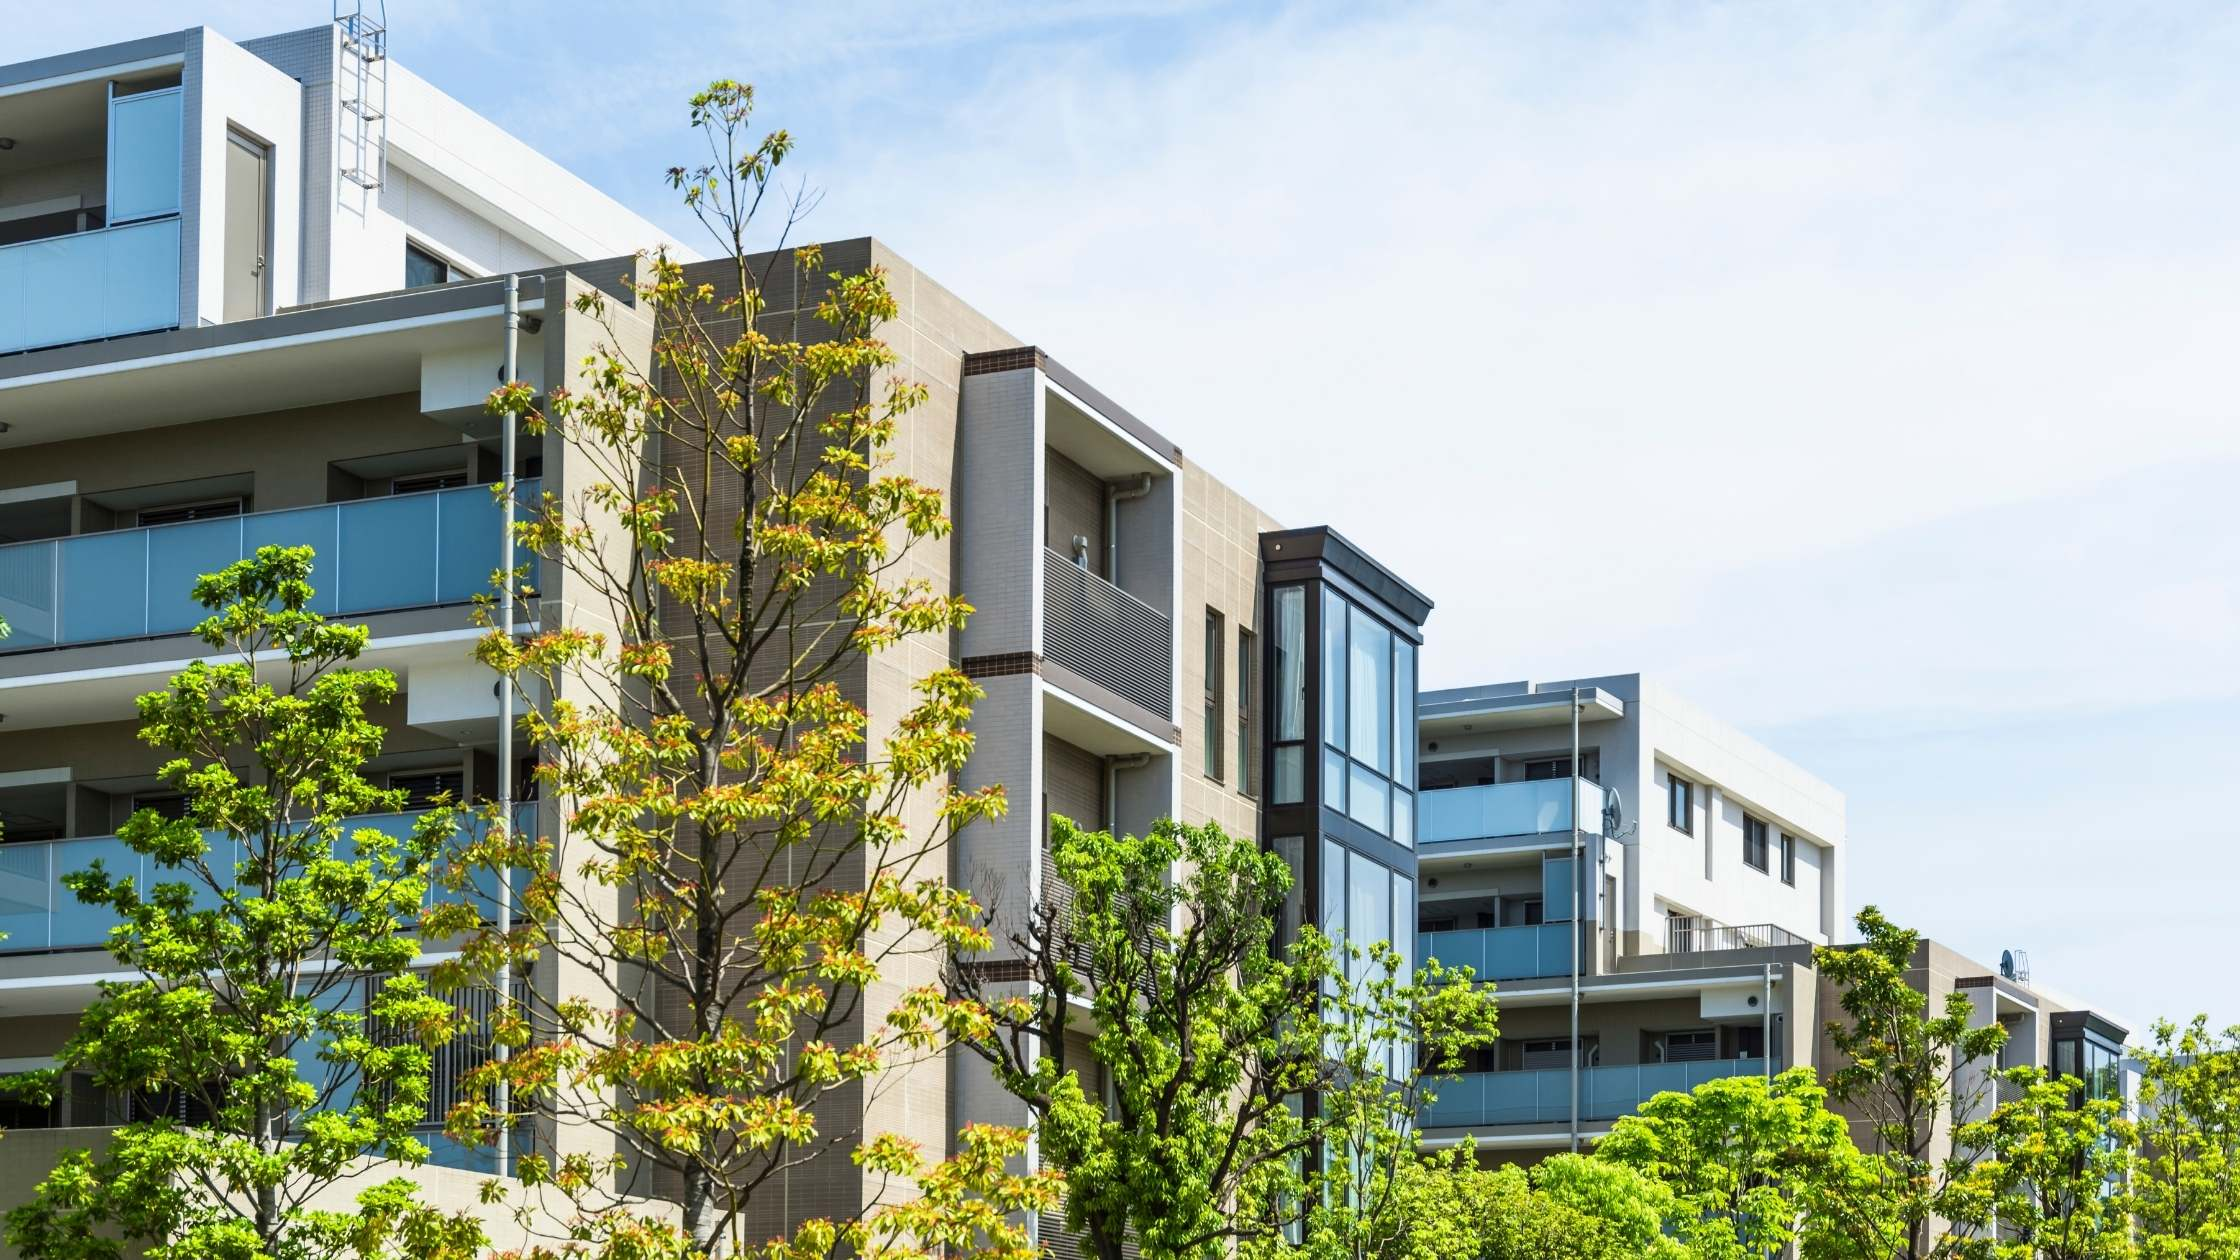 6 Questions to Ask Yourself Before Selling Your Investment Condo